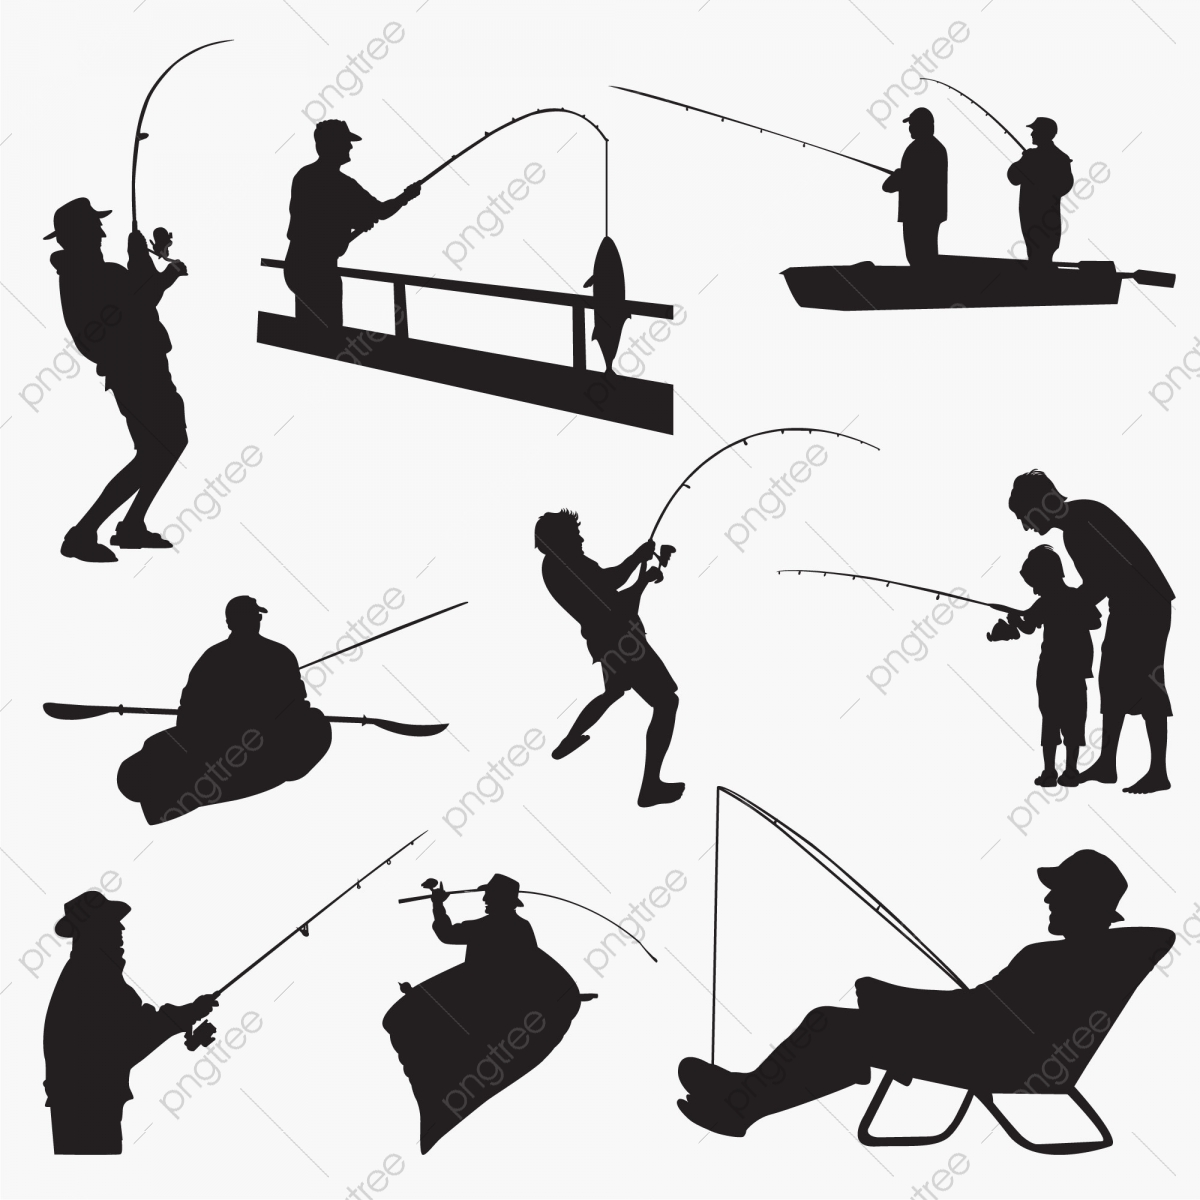 Fishing Man Silhouettes Boat Fauna Fish Png And Vector With Transparent Background For Free Download